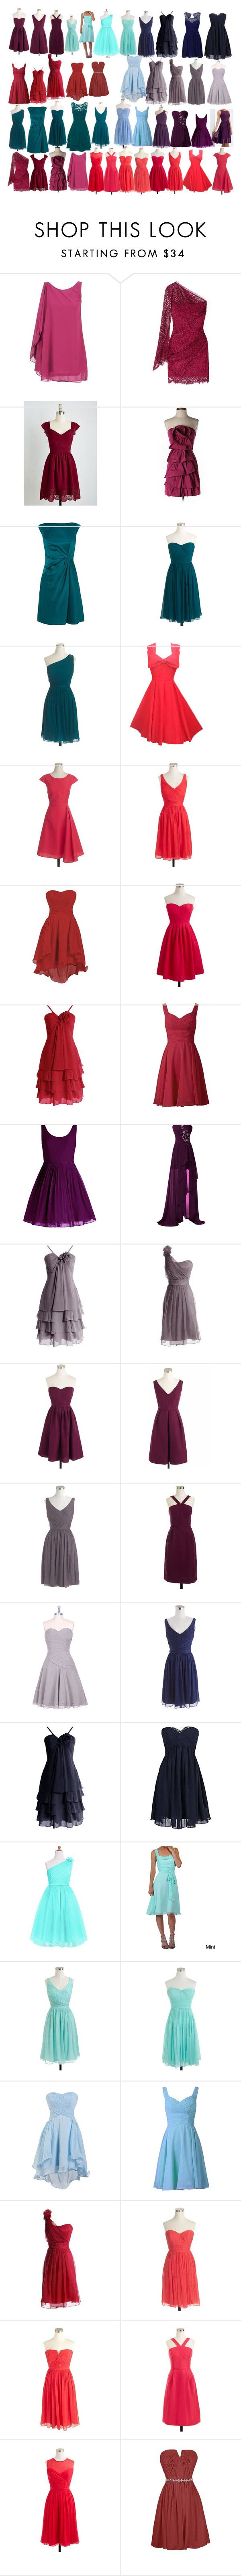 """""""Bridesmaids dresses"""" by thegreatcate ❤ liked on Polyvore featuring Bari Jay, BT London, Emilio Pucci, BCBGMAXAZRIA, Karen Millen, J.Crew and Dfi"""